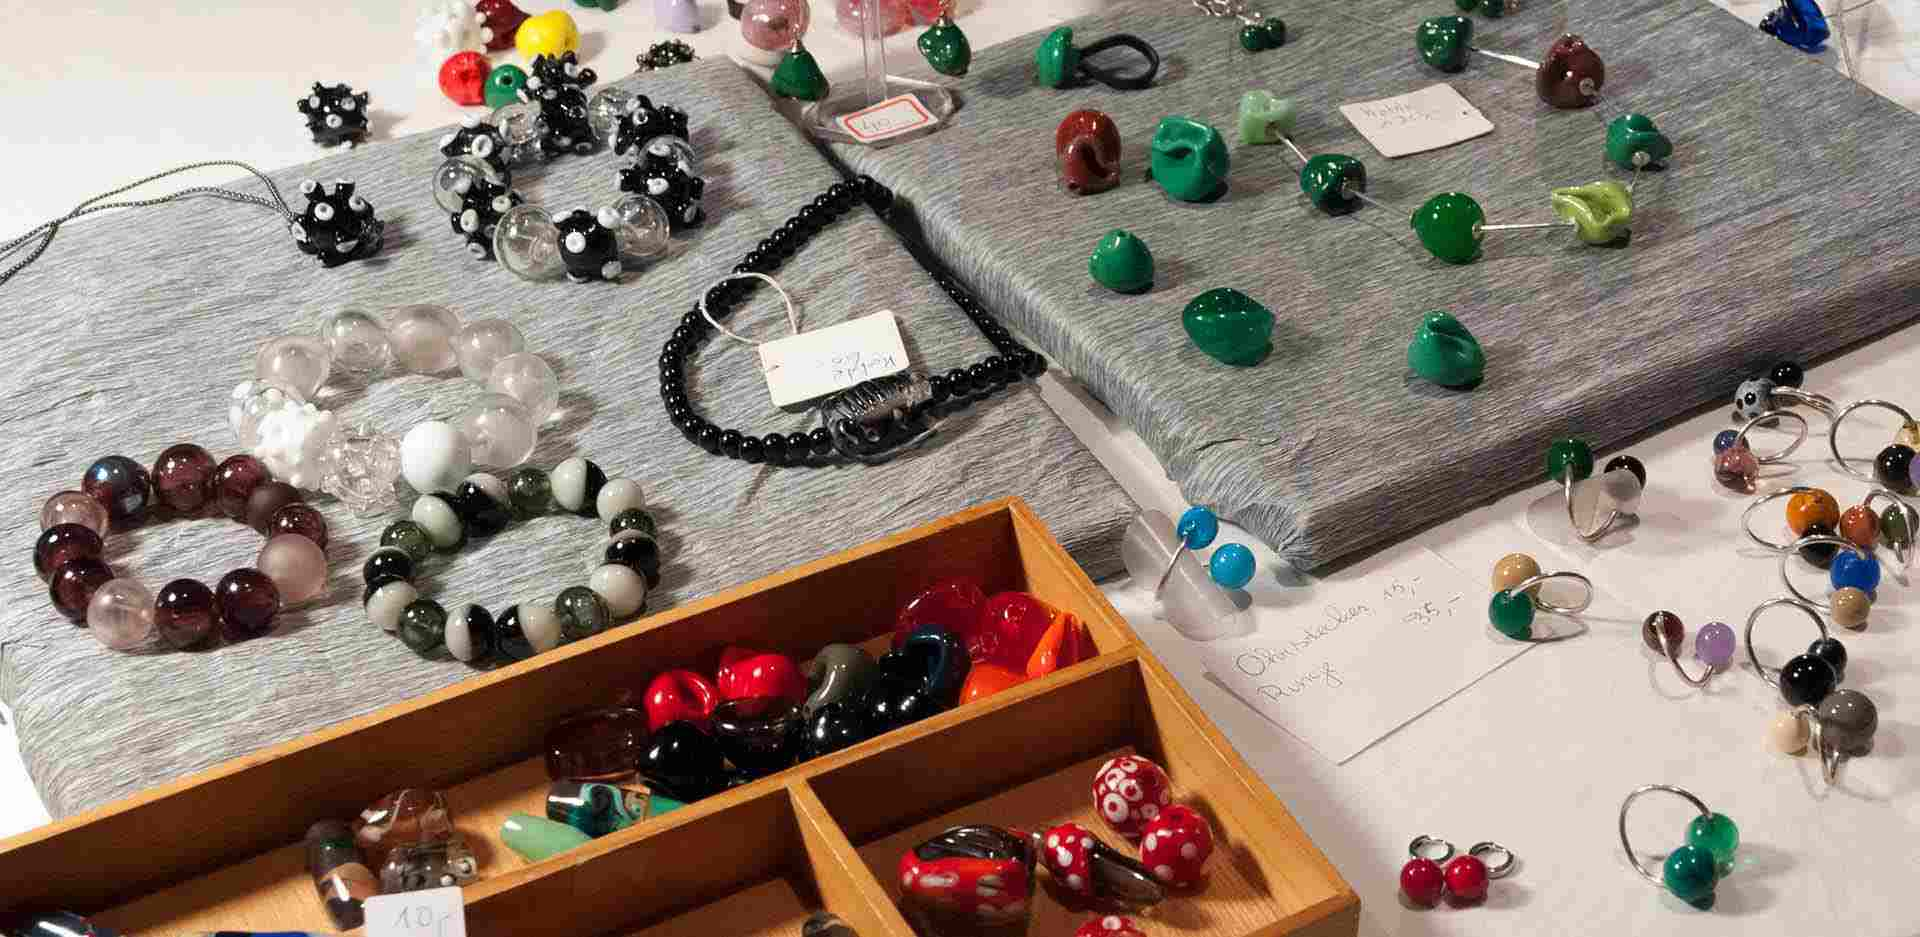 Bead and Textile Fair at the Museum Europäischer Kulturen